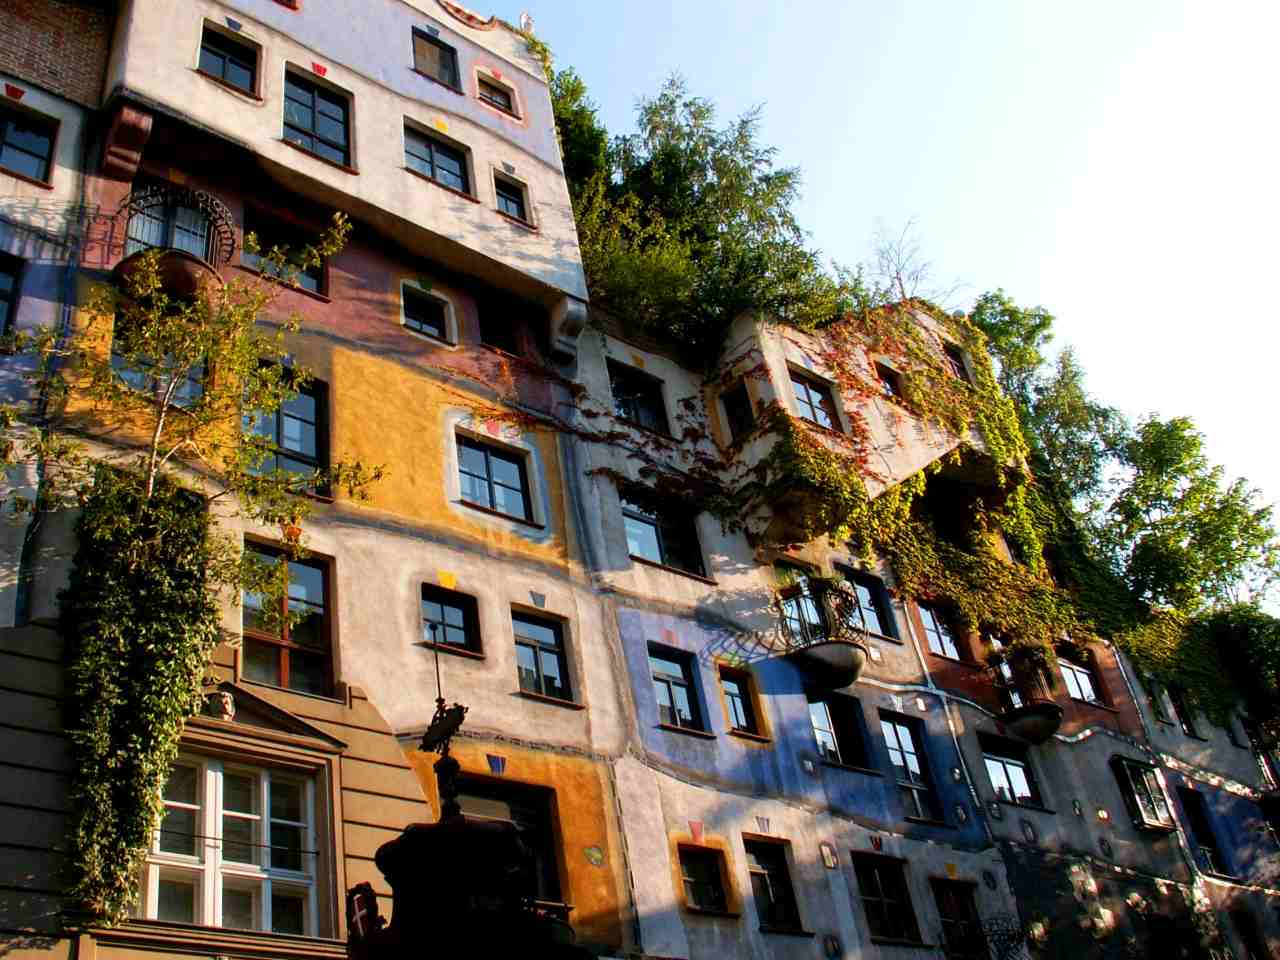 Hundertwasserhaus, Best Places to Visit in Vienna